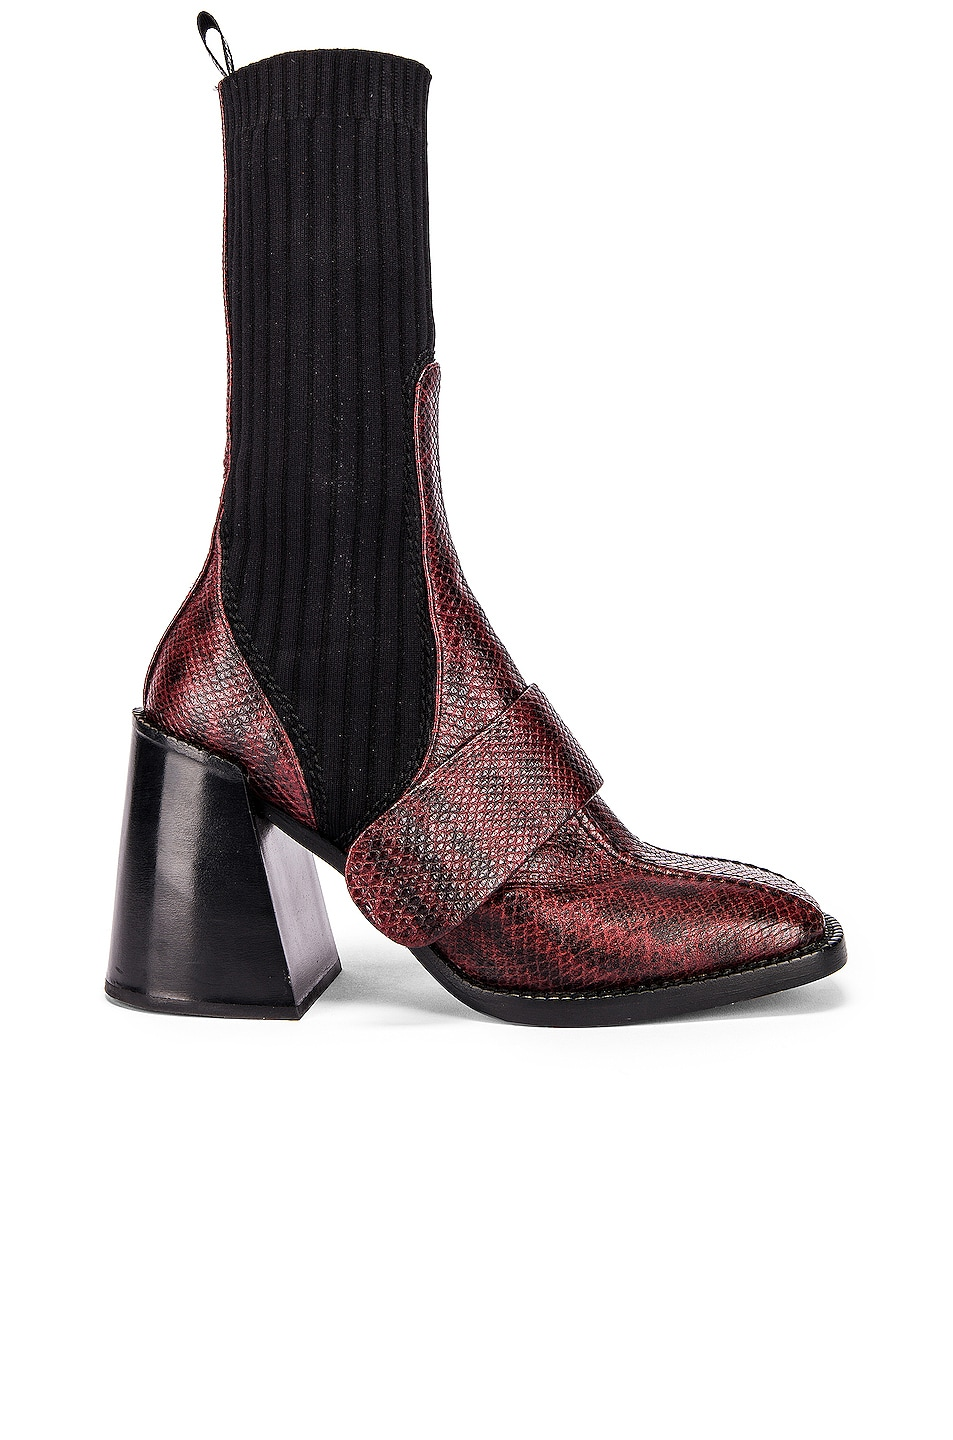 Image 1 of Chloe Bea Boots in Dahlia Red